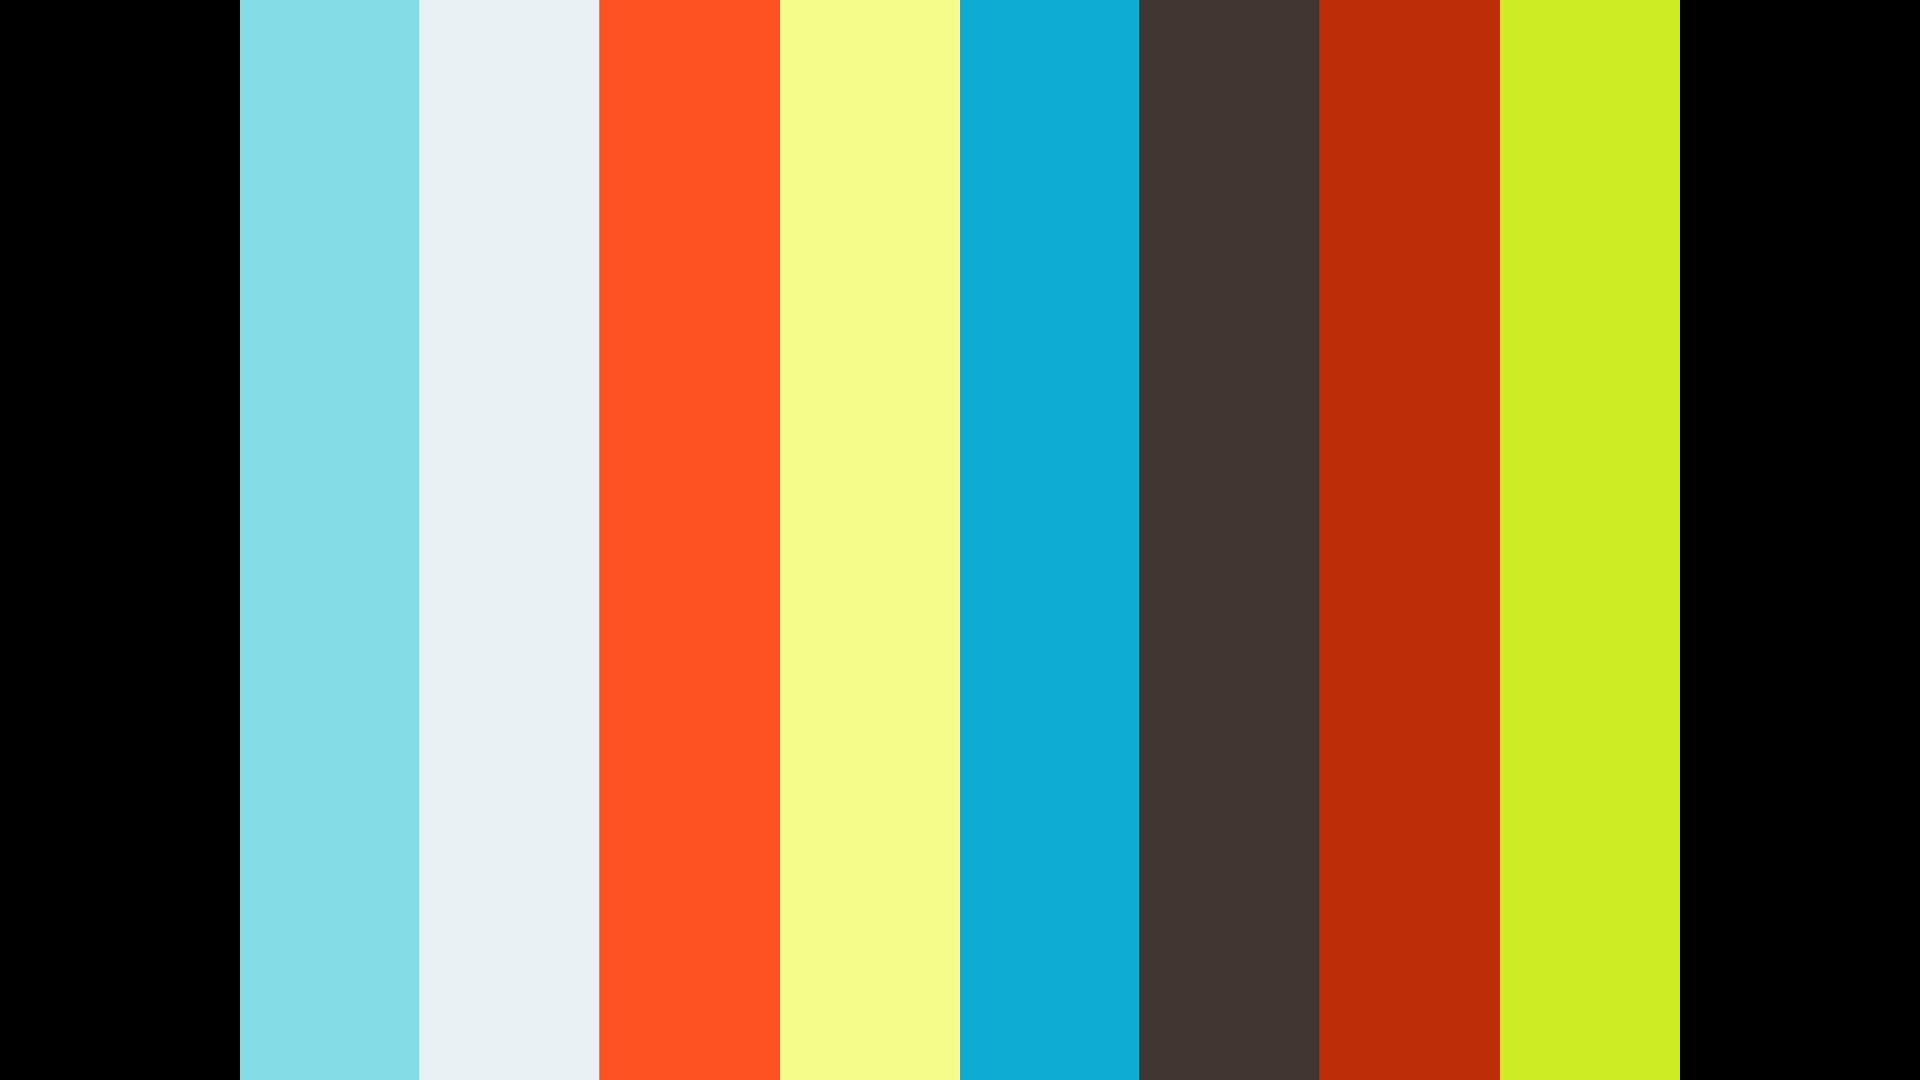 Kingdom - Court of Pleas